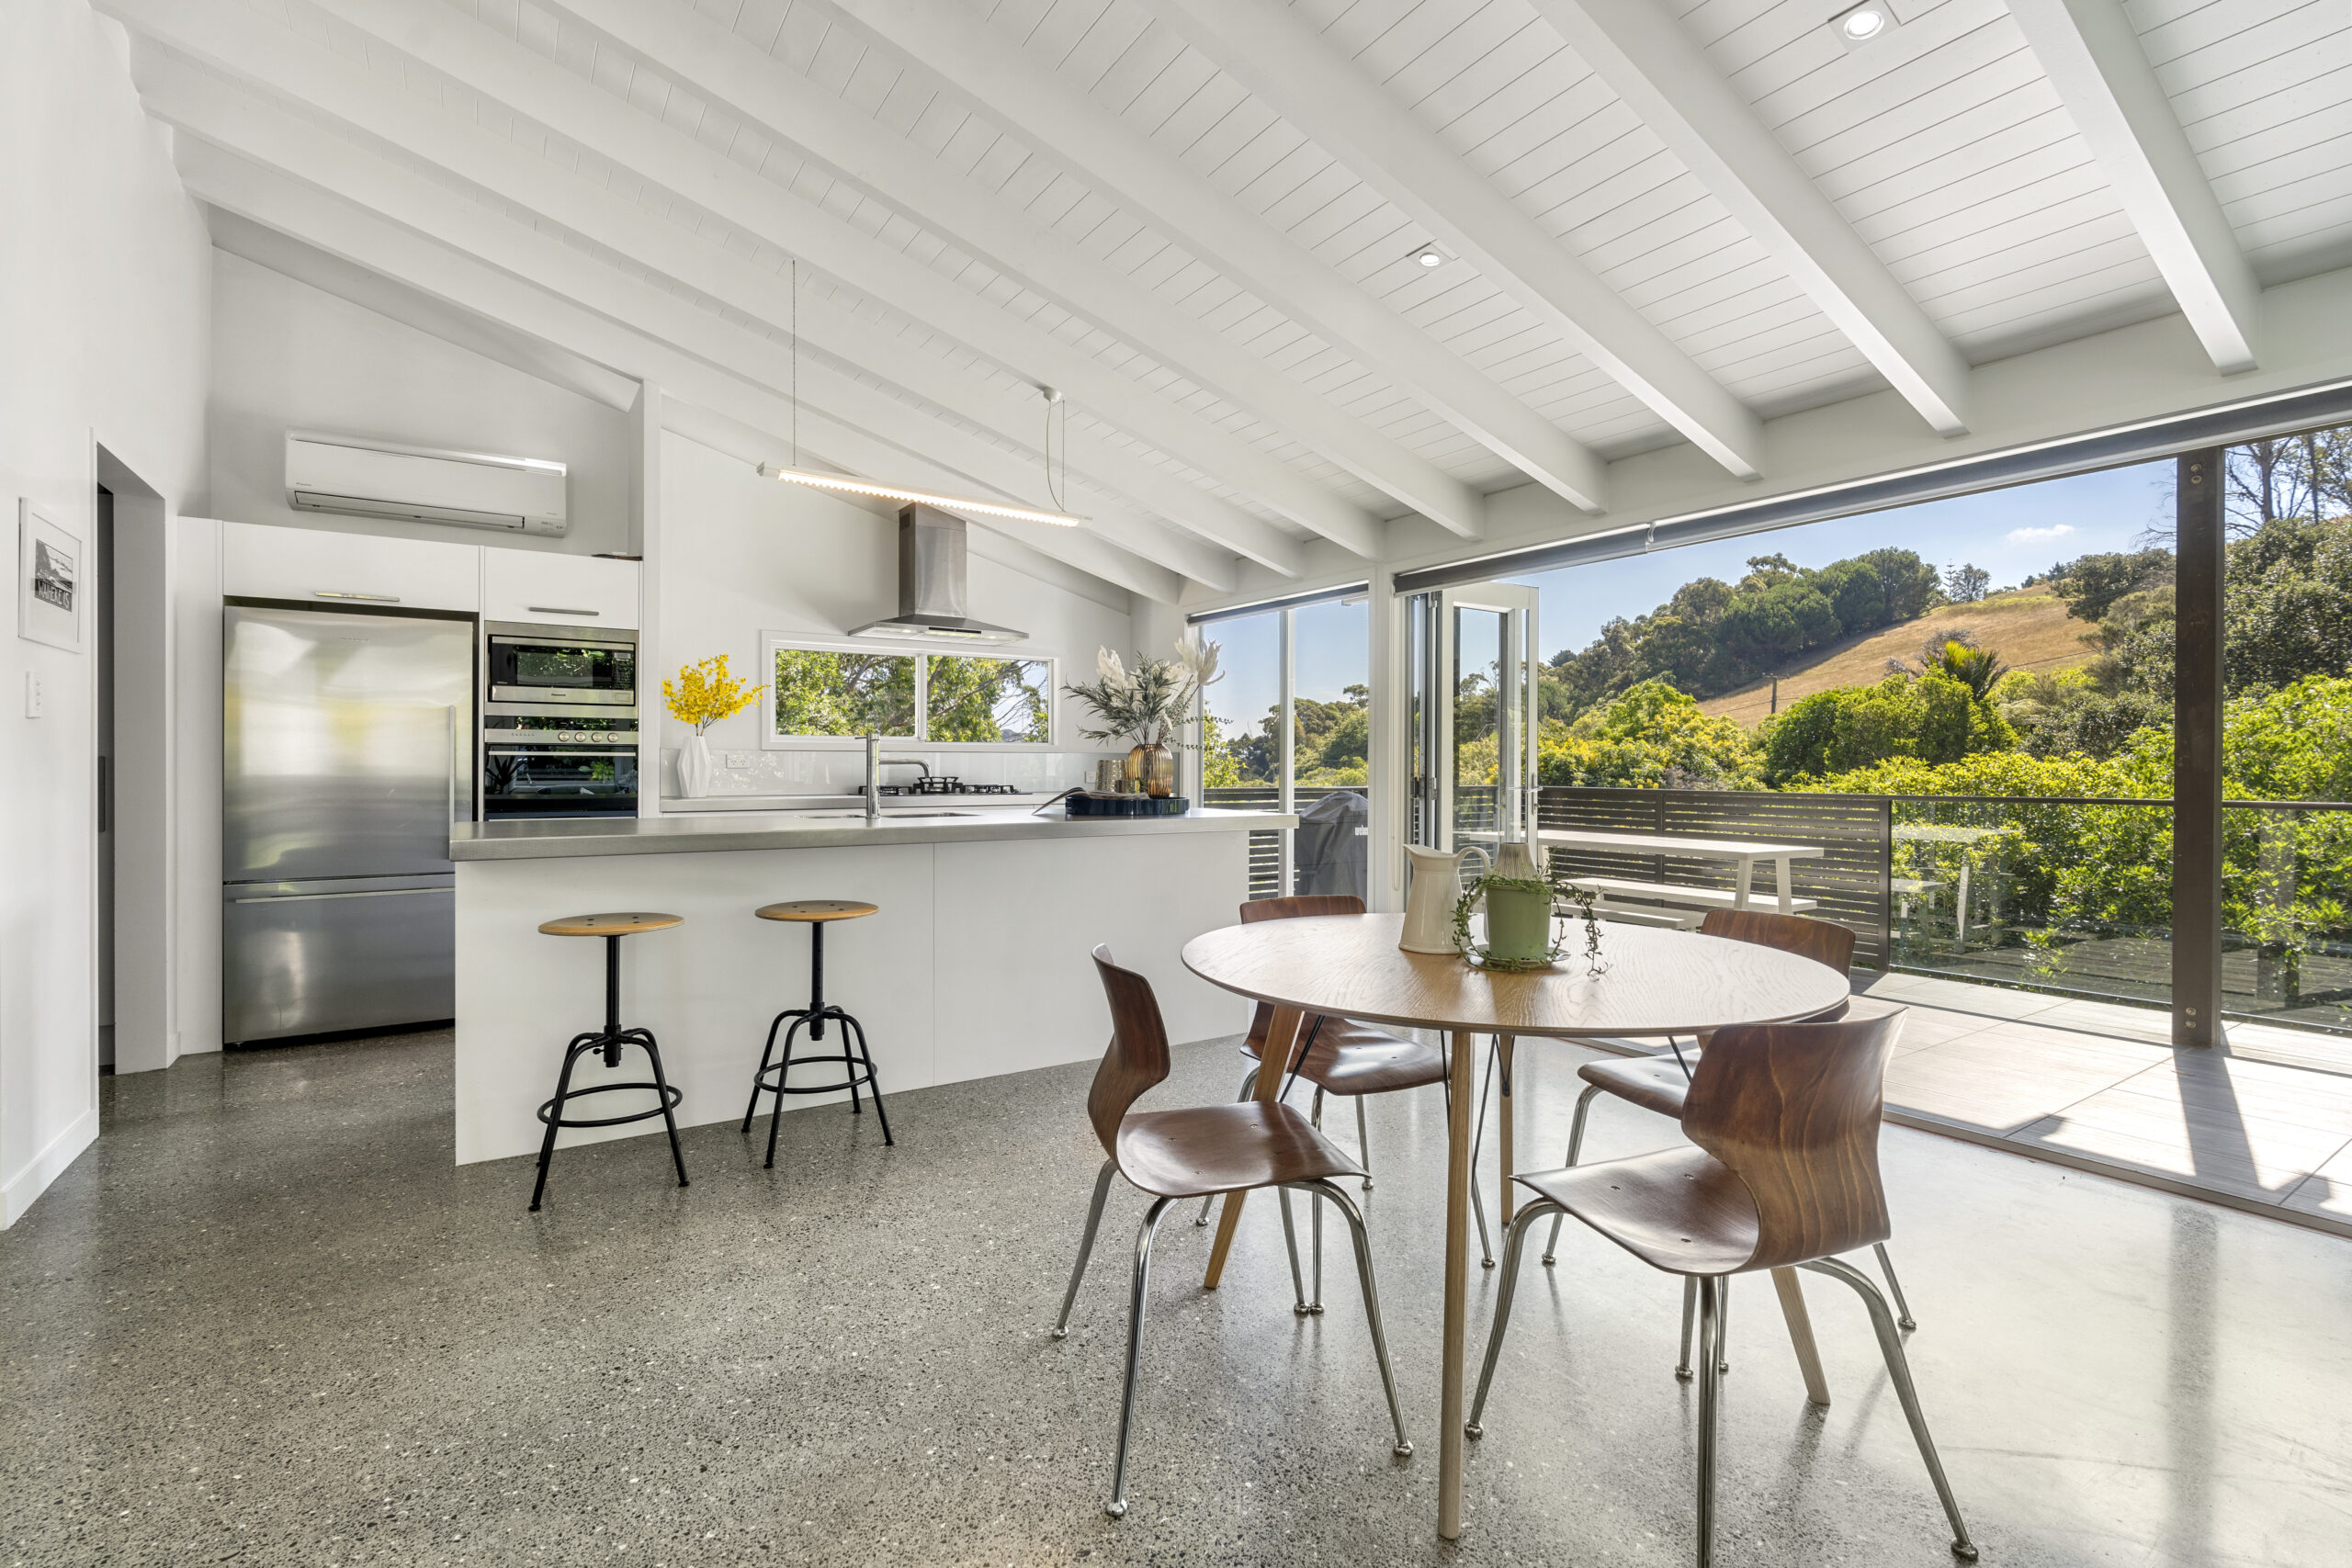 15.-Dining-and-kitchen-looking-outside-to-hillside-across-road-scaled.jpg